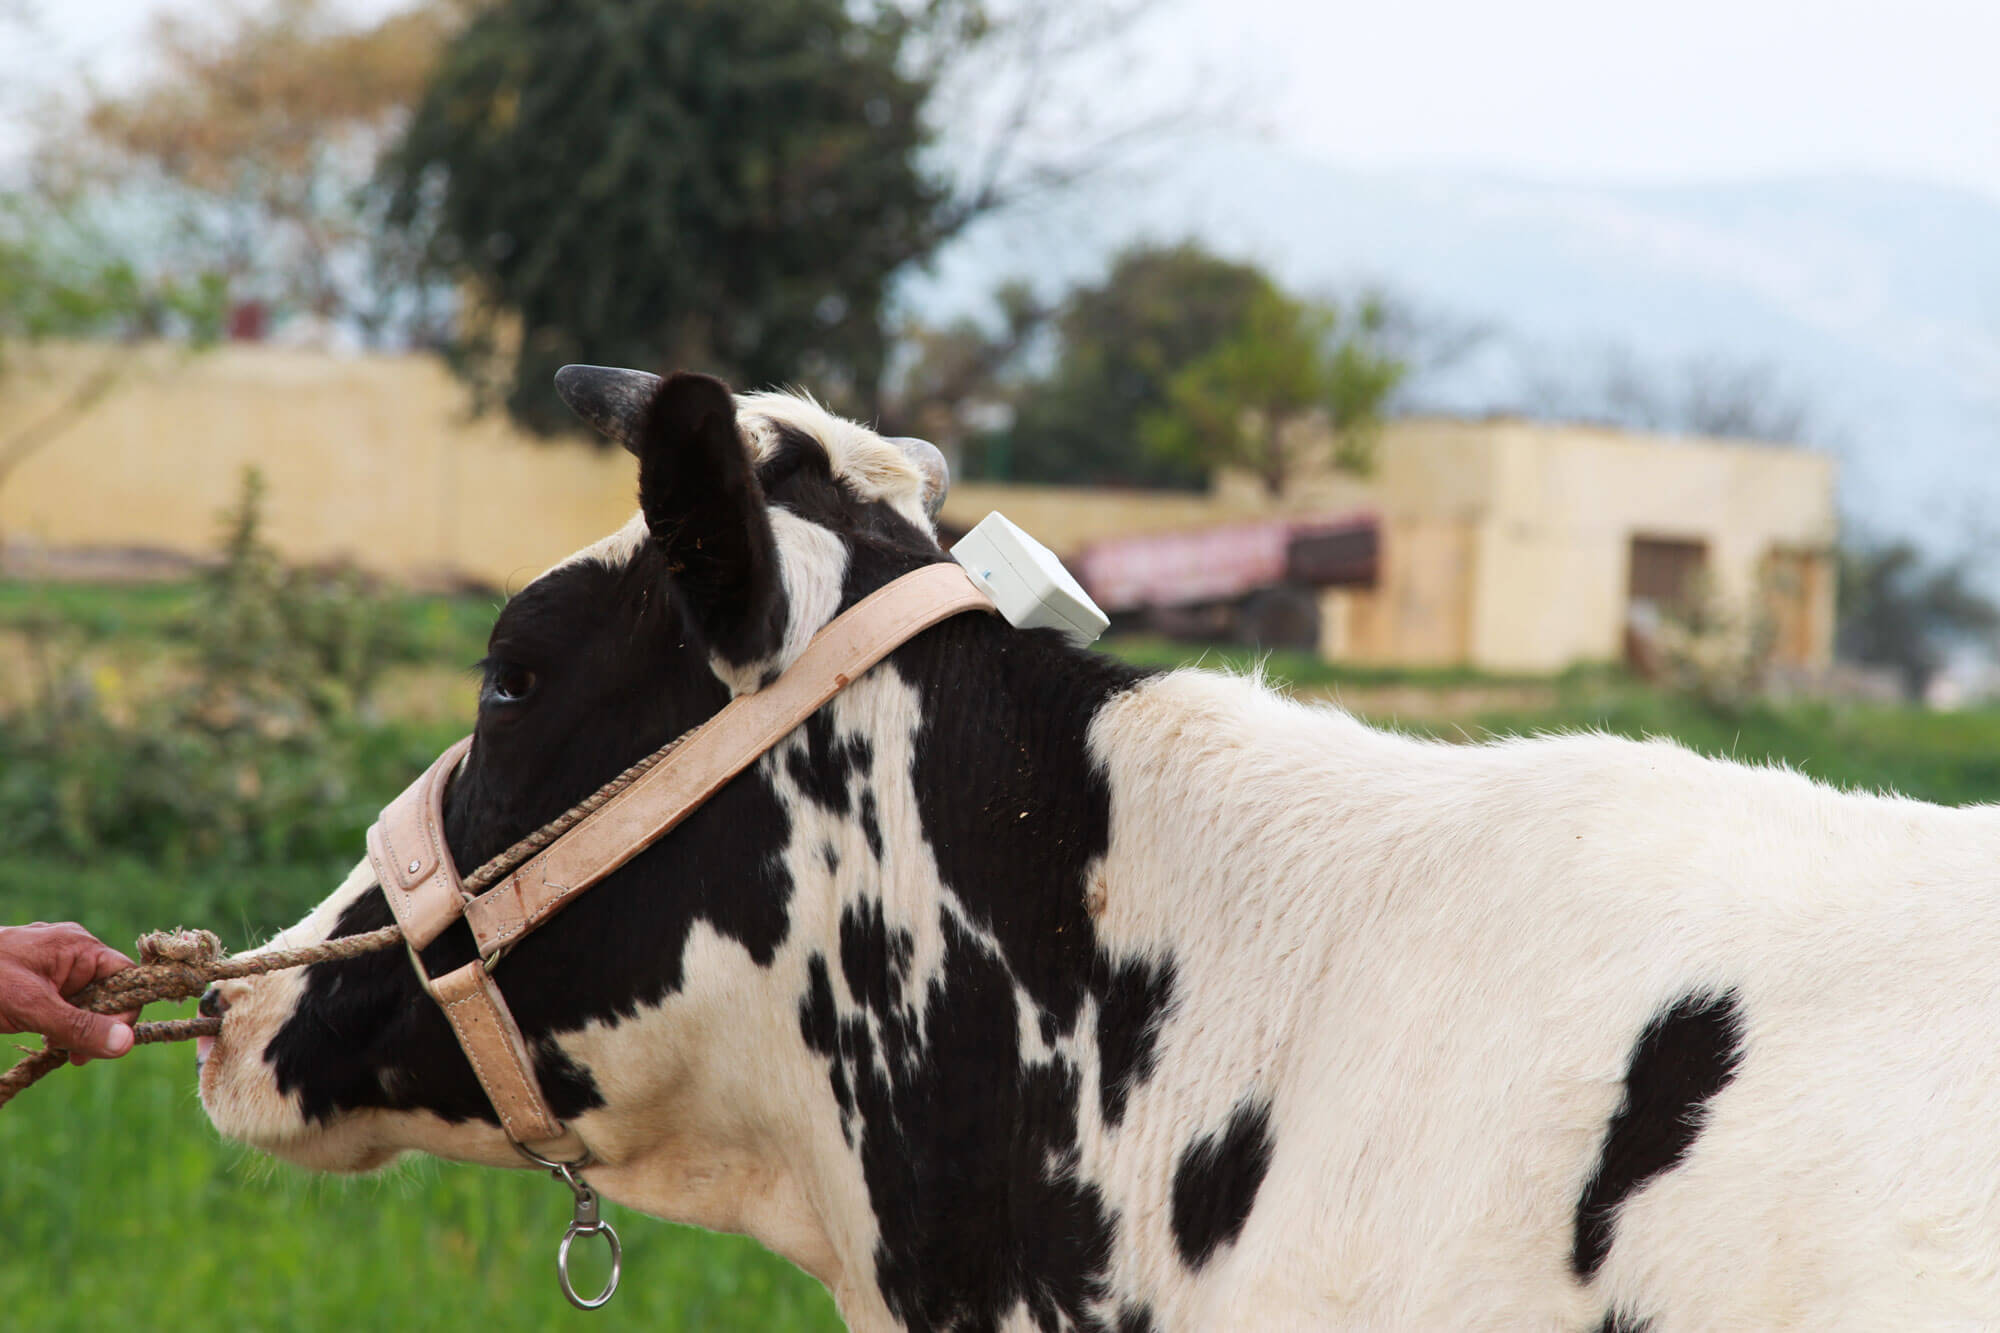 Cowlar 's Smart Wearable cow collar helps increase dairy output by approximately 15 percent